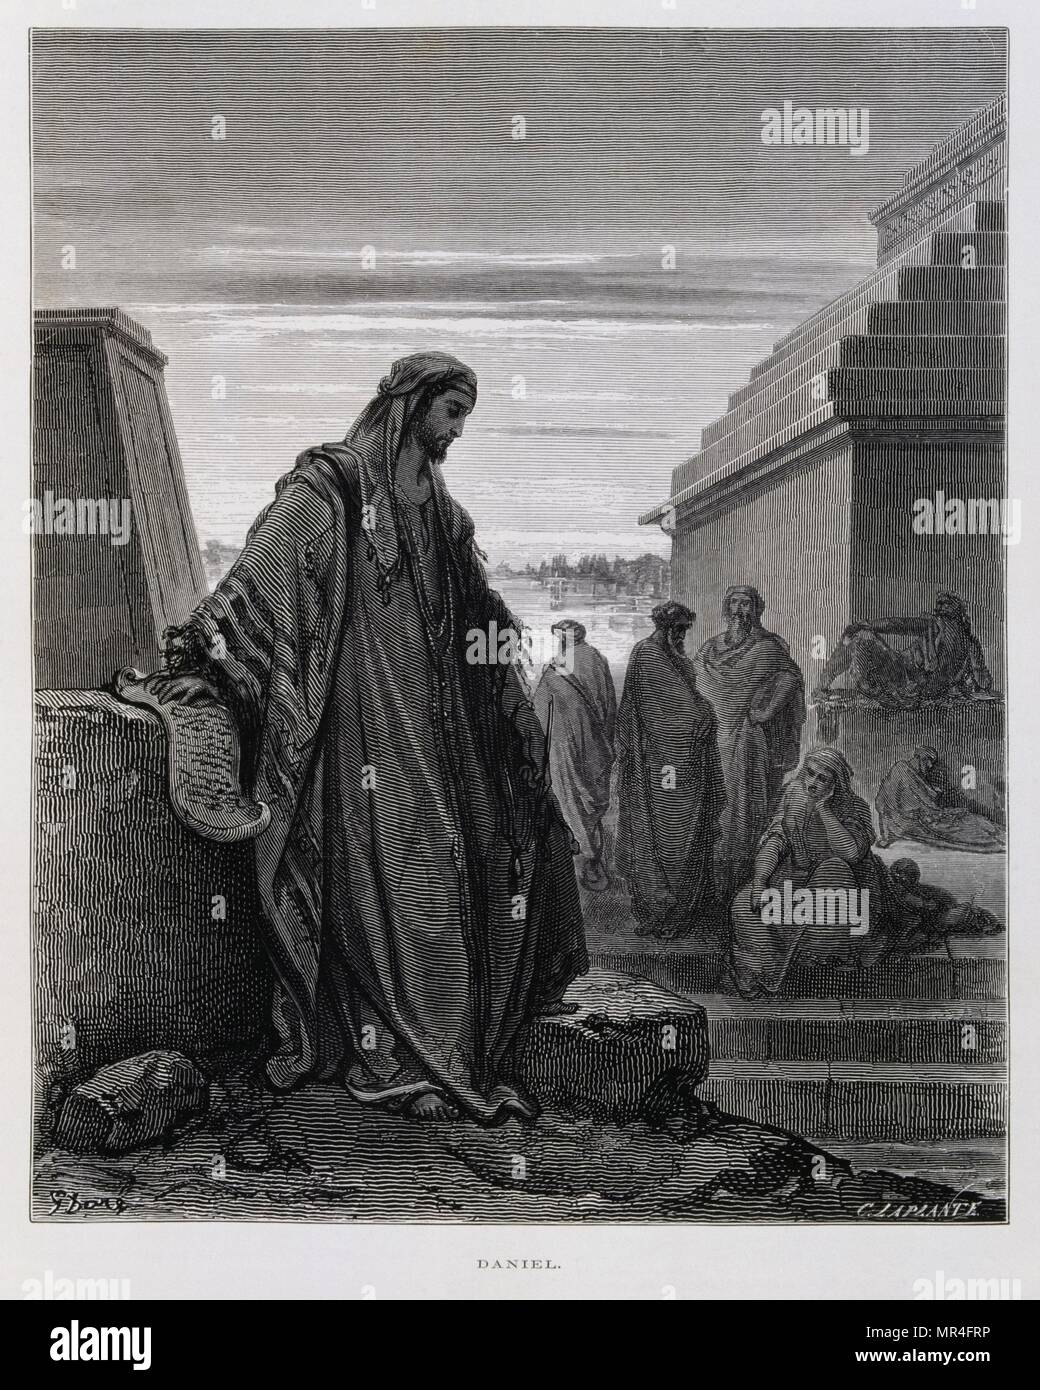 The prophet Daniel, Illustration from the Dore Bible 1866. In 1866, the French artist and illustrator Gustave Doré (1832–1883), published a series of 241 wood engravings for a new deluxe edition of the 1843 French translation of the Vulgate Bible, popularly known as the Bible de Tours. This new edition was known as La Grande Bible de Tours and its illustrations were immensely successful. - Stock Image